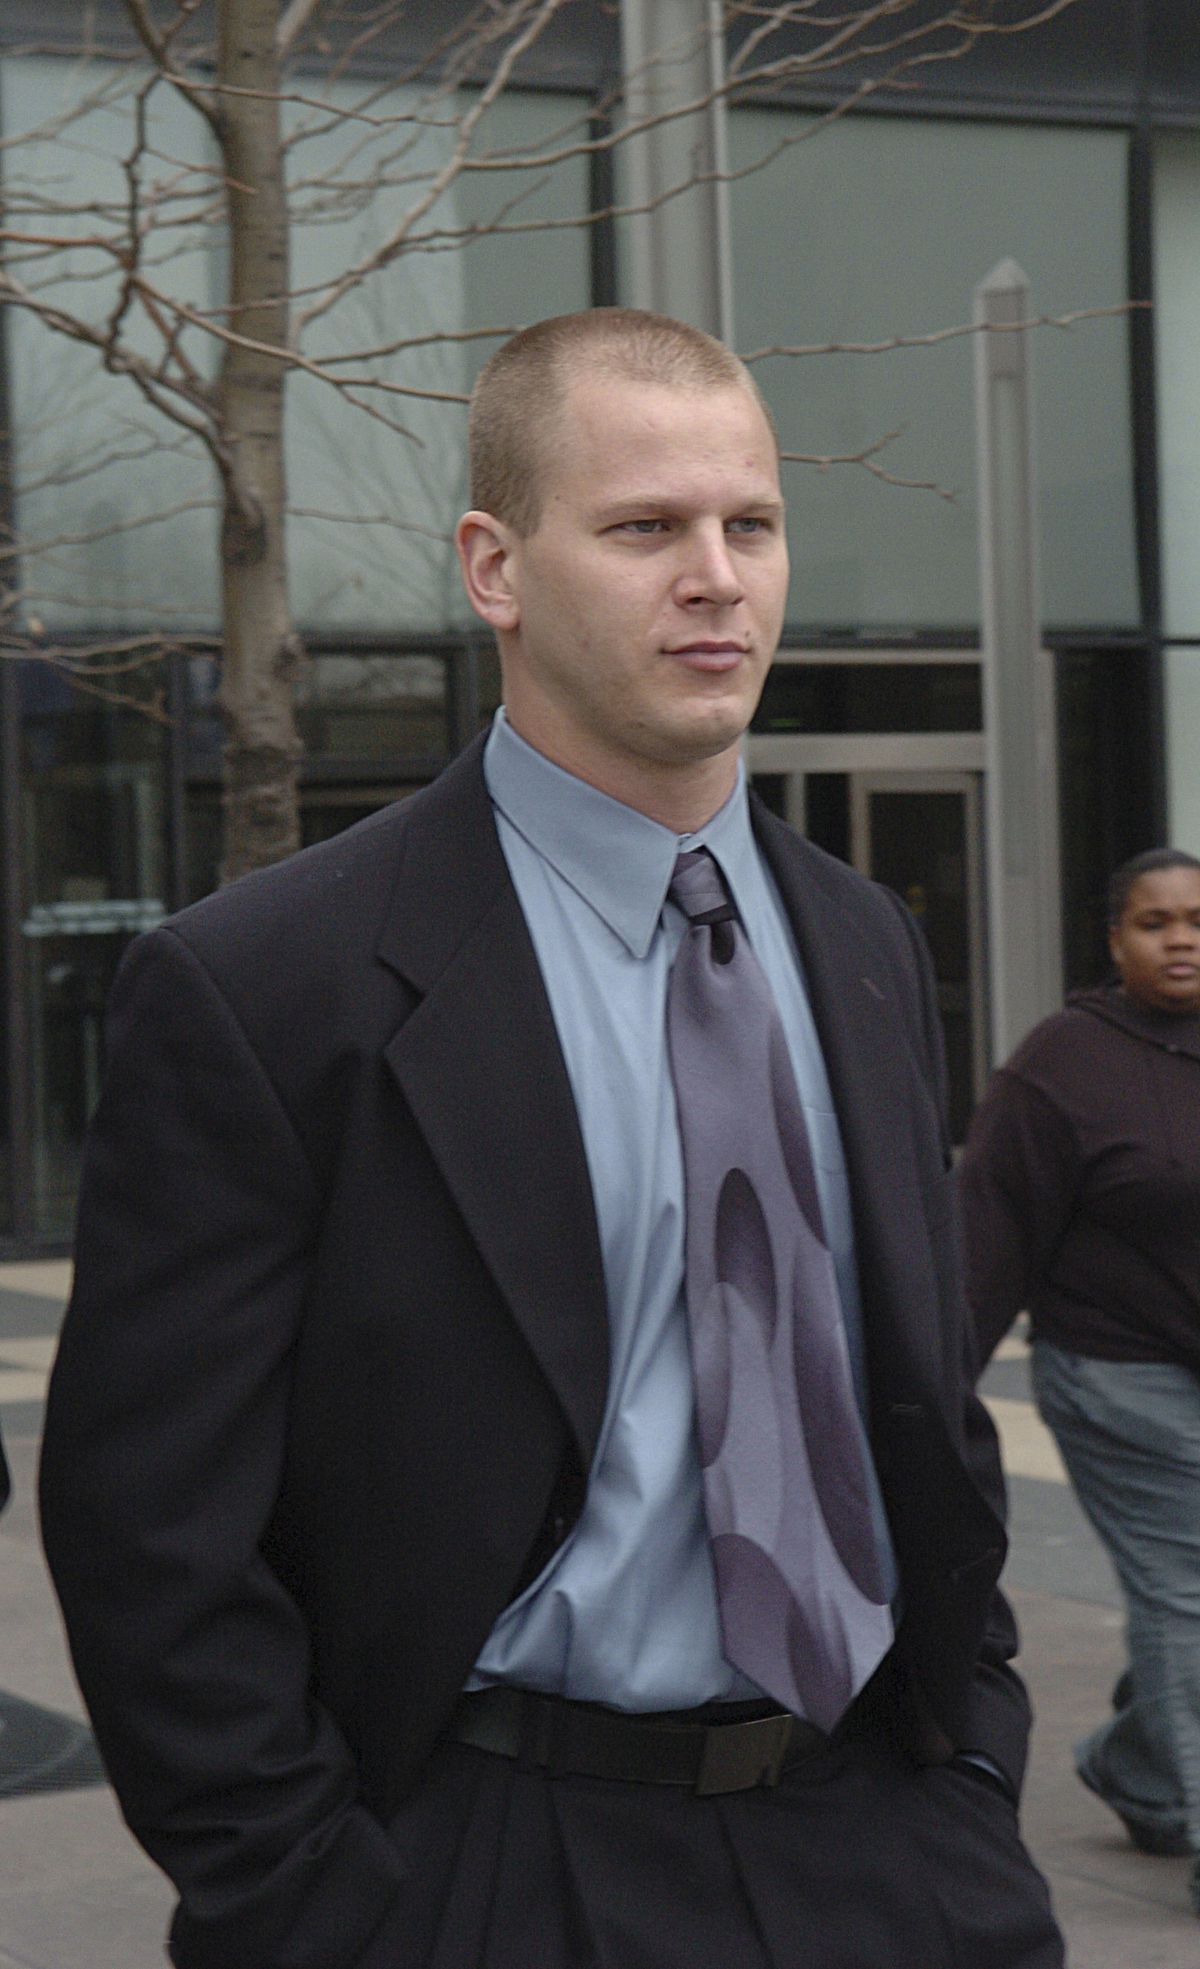 Officer Thomas Sherry leaves the Cook County criminal courts building at 26th Street and California Avenue after a 2006 court appearance.